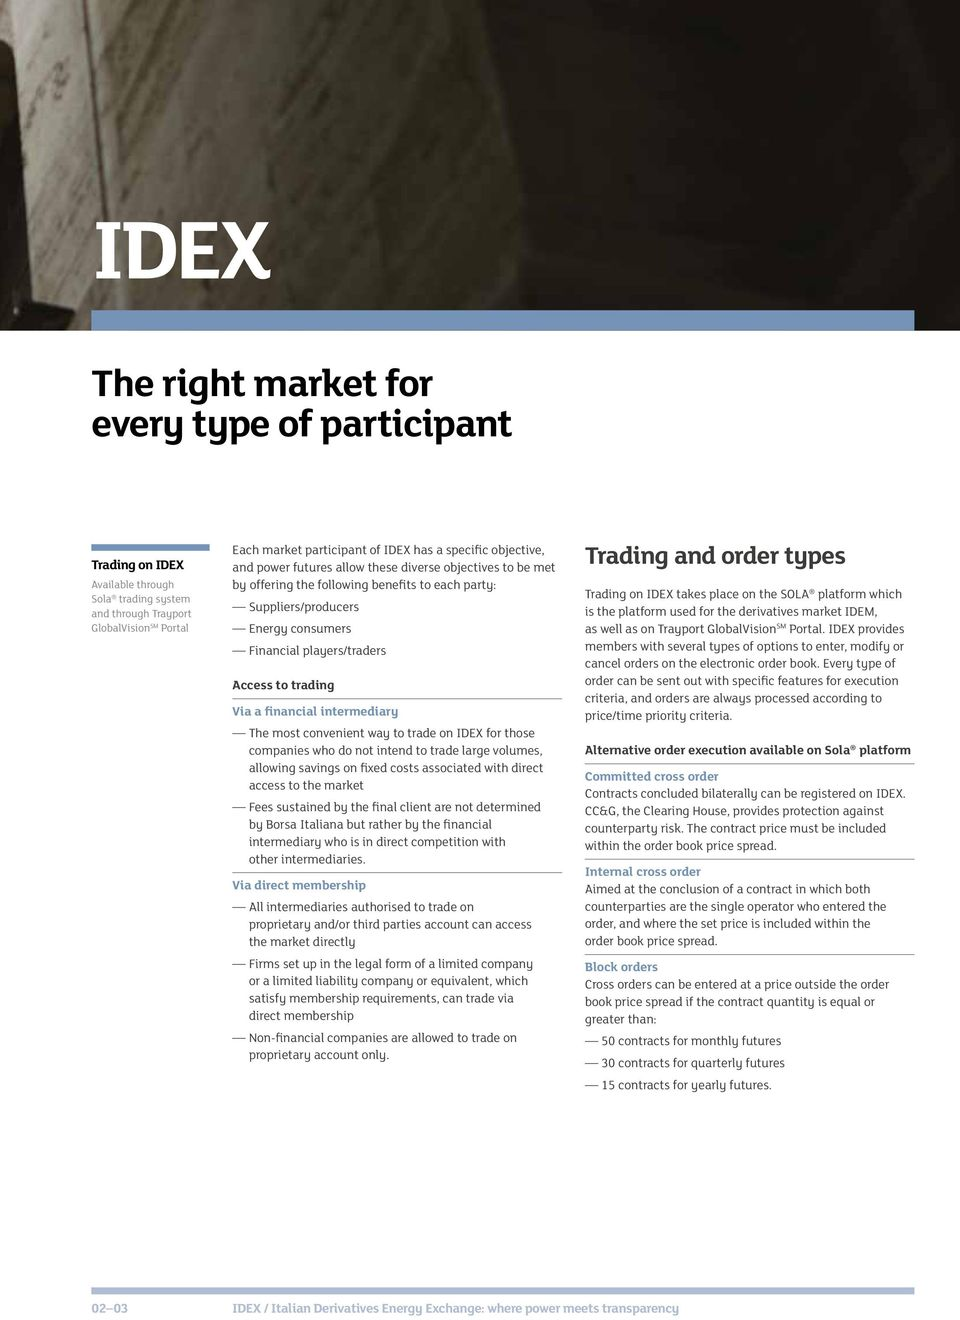 trading Via a financial intermediary The most convenient way to trade on IDEX for those companies who do not intend to trade large volumes, allowing savings on fixed costs associated with direct